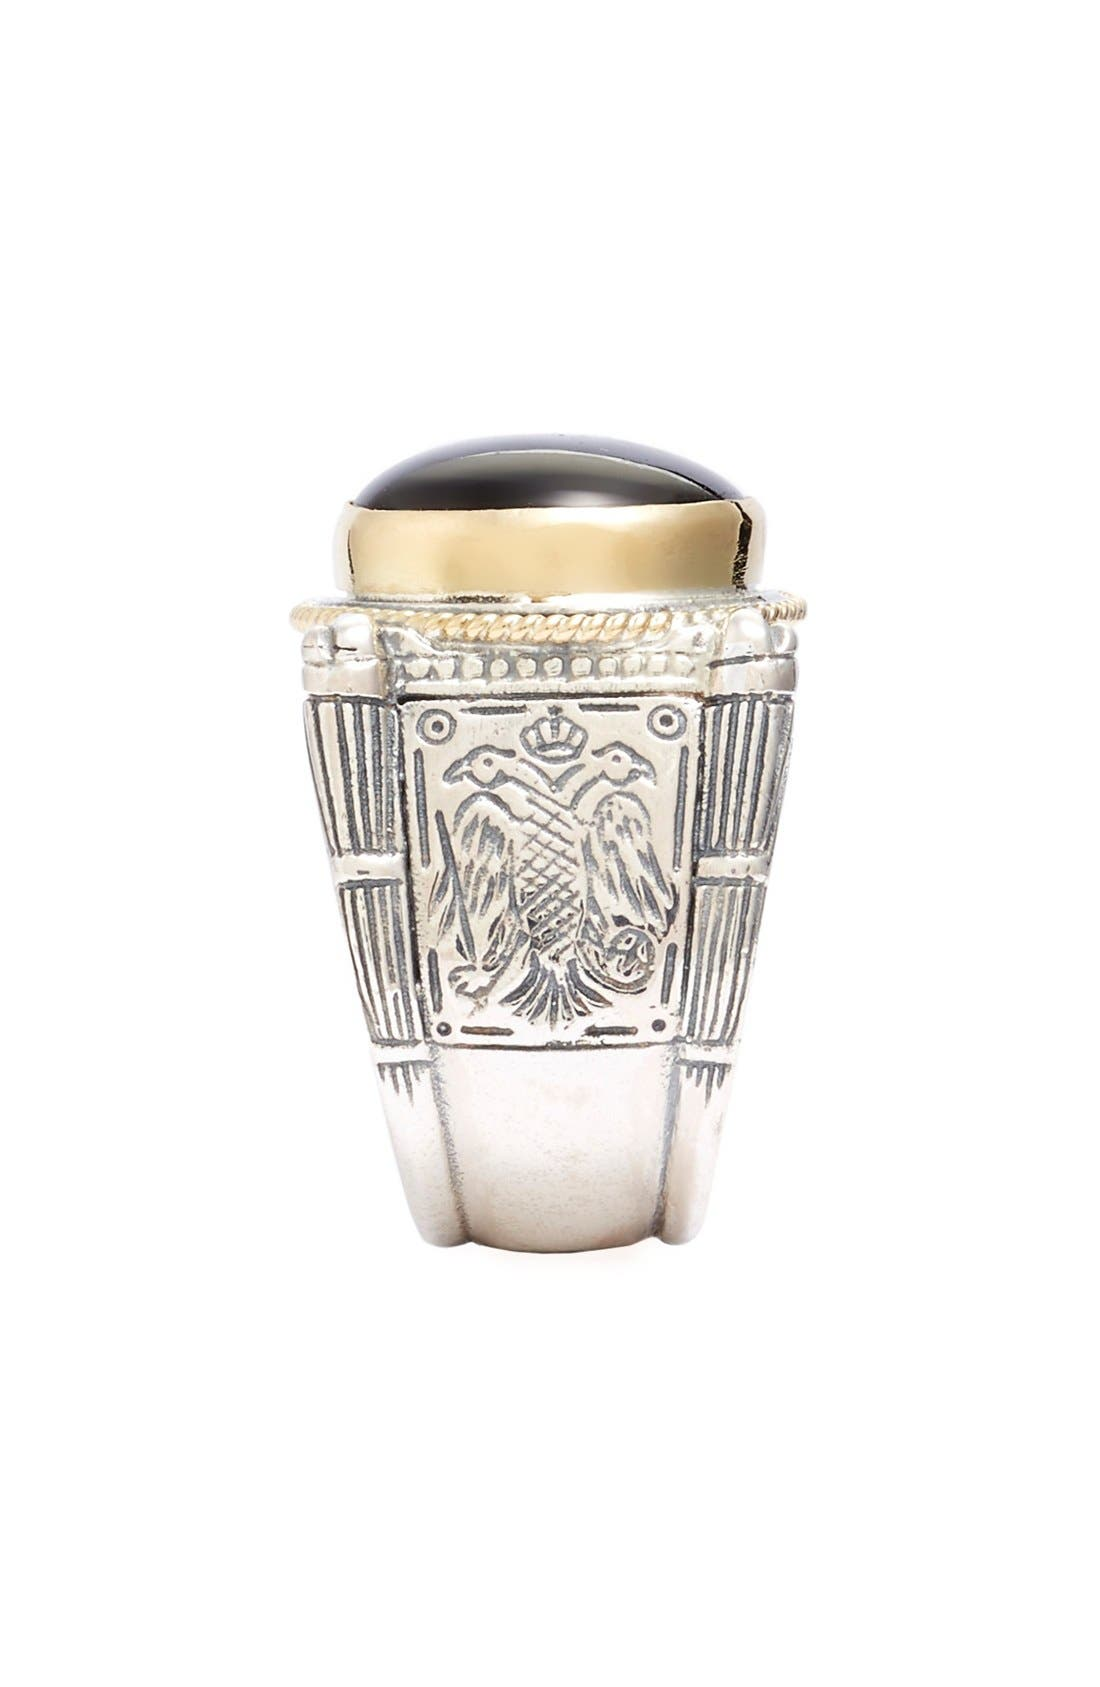 'Minos' Etched Black Onyx Ring,                             Alternate thumbnail 2, color,                             040